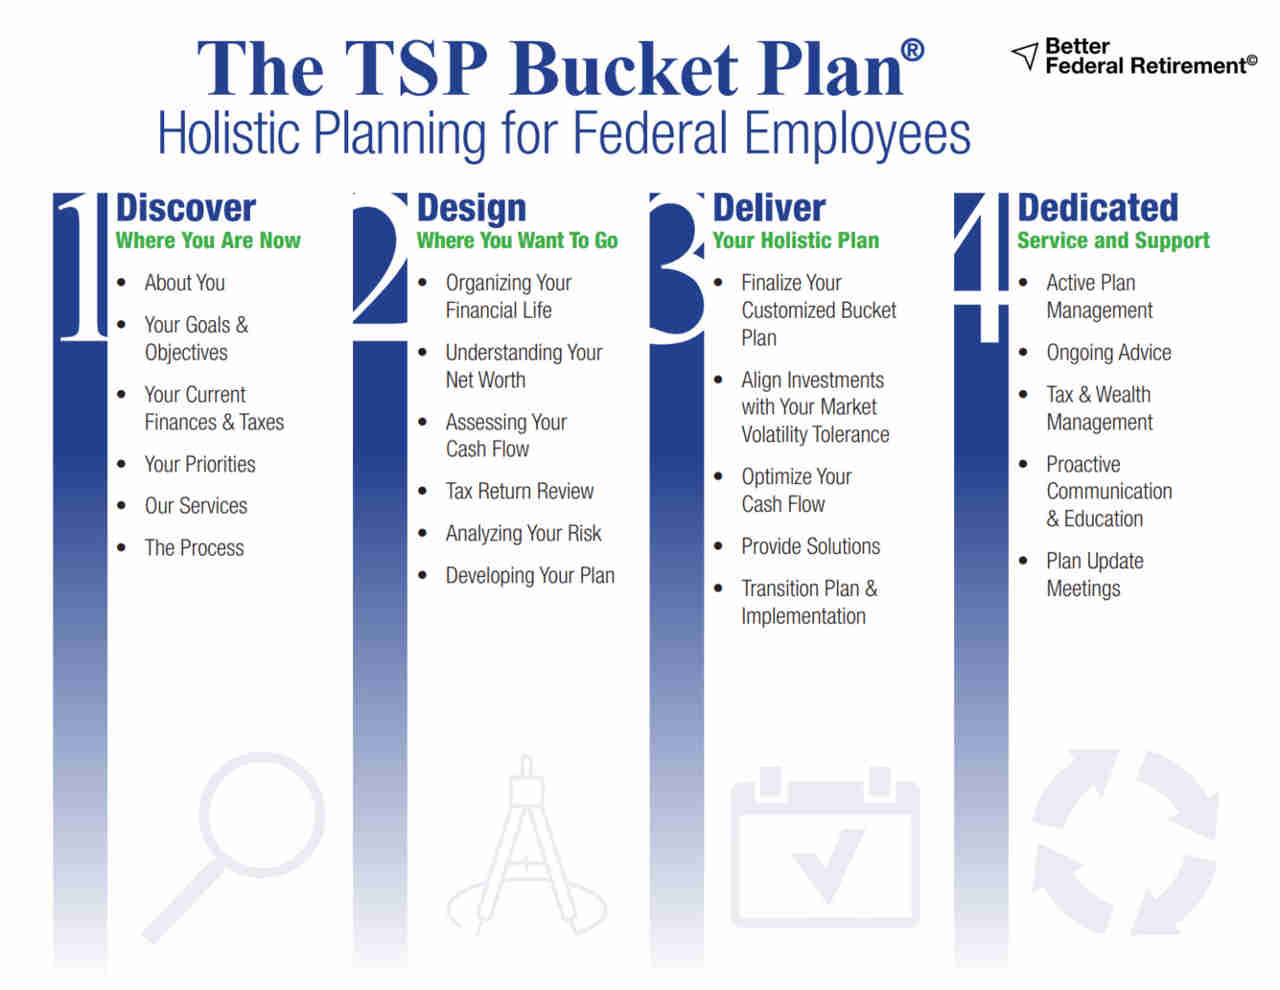 The TSP Bucket Plan Service Model